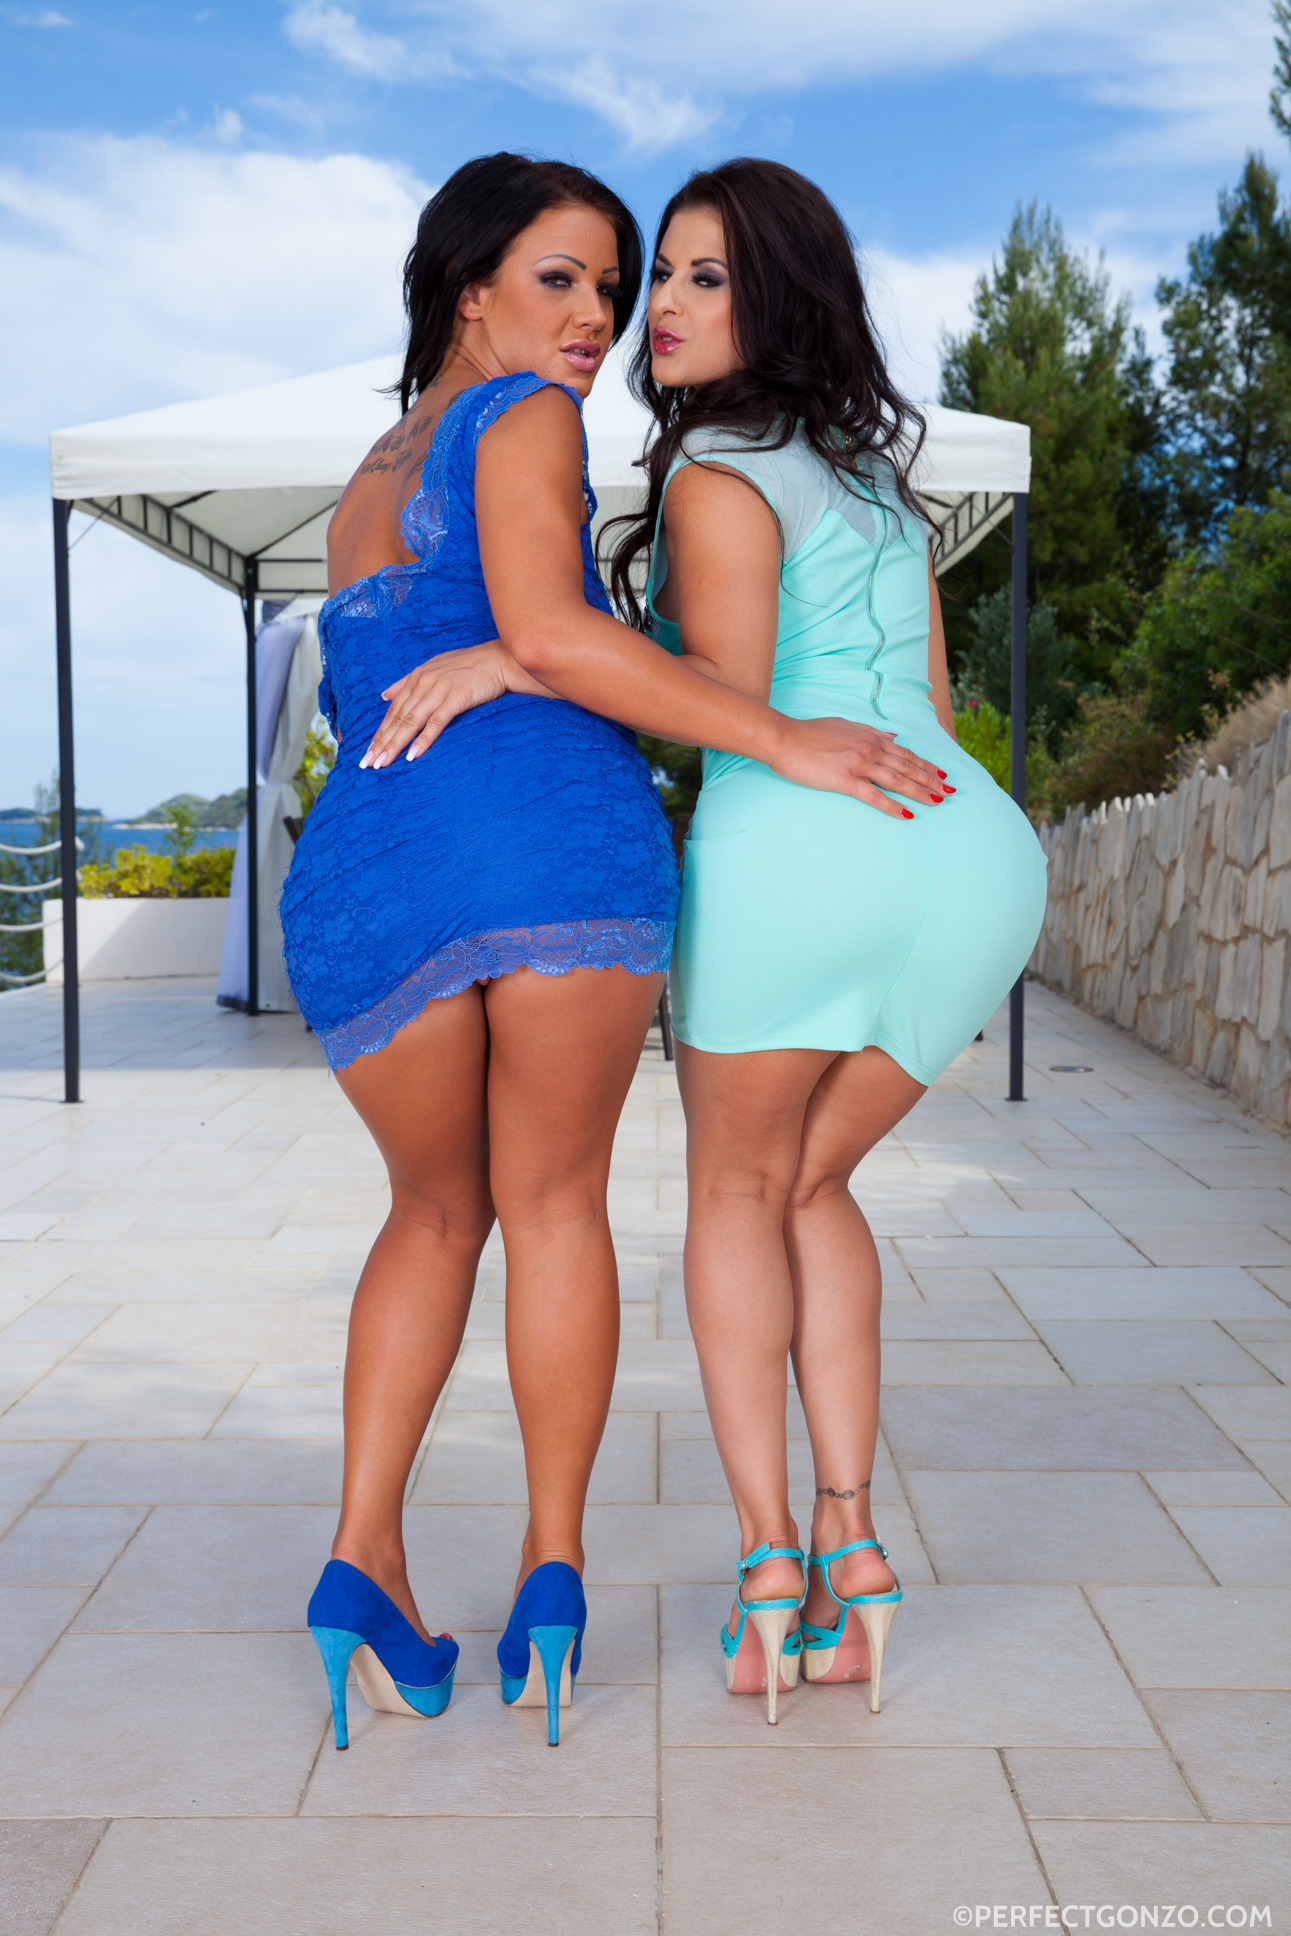 Perfectgonzo Billie Star  and  Nia Black pornstar